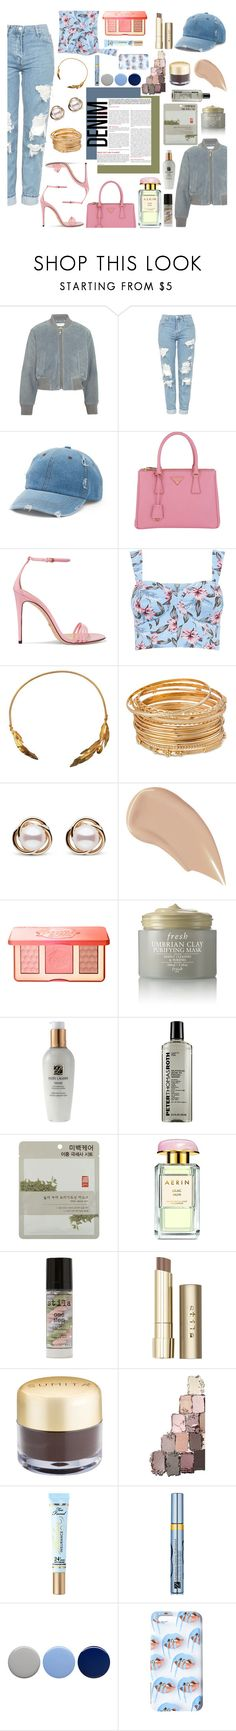 """""""Distressed... Look #96"""" by alexandriadelamode ❤ liked on Polyvore featuring See by Chloé, Topshop, Mudd, Prada, Gucci, Vassiliki, Trilogy, NARS Cosmetics, Too Faced Cosmetics and Fresh"""